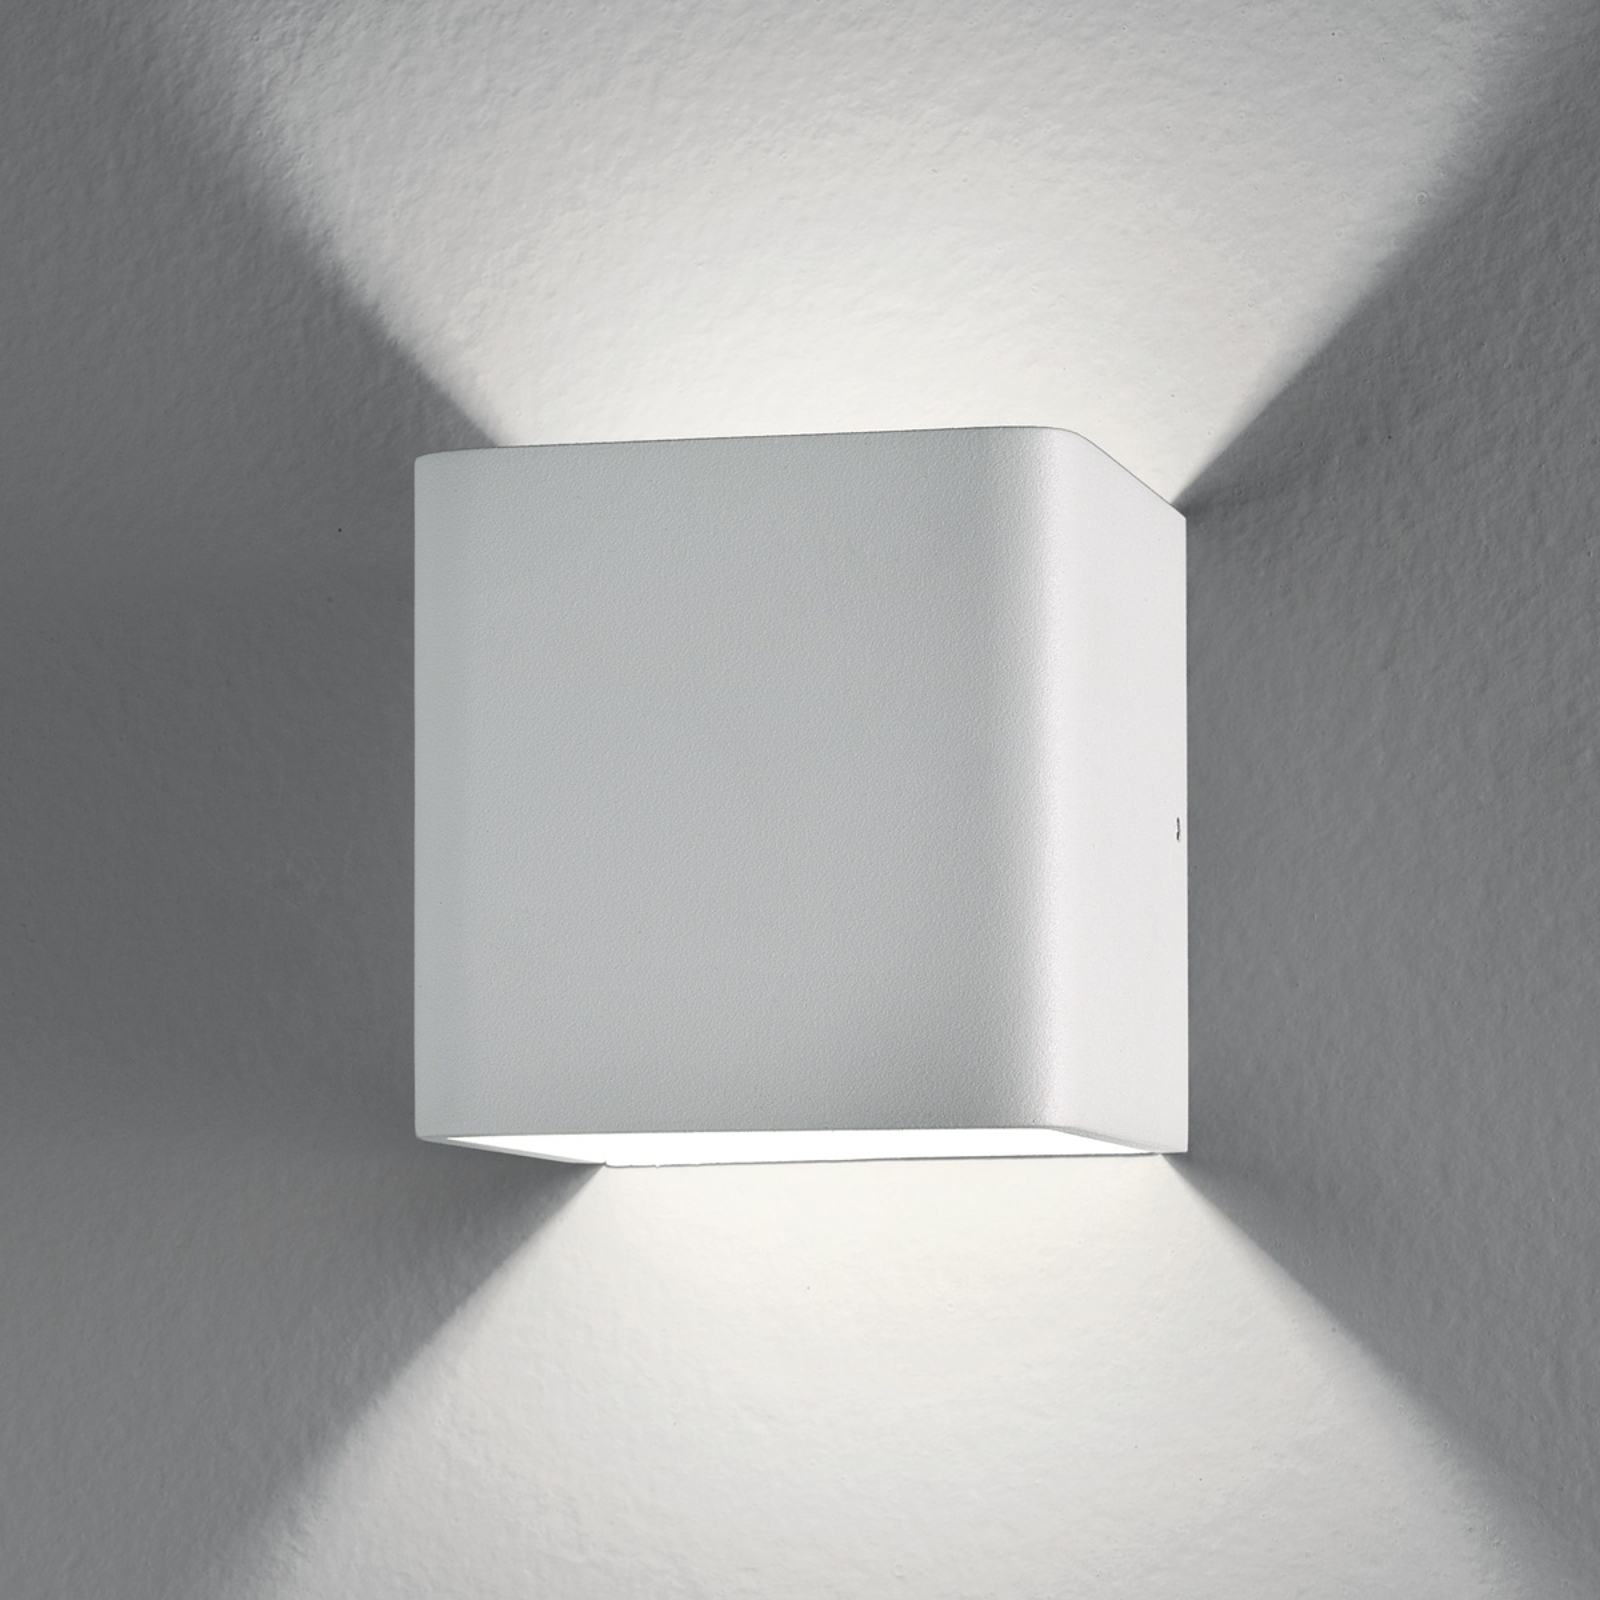 Cubical Gino LED wall light, 6 W_3023051_1